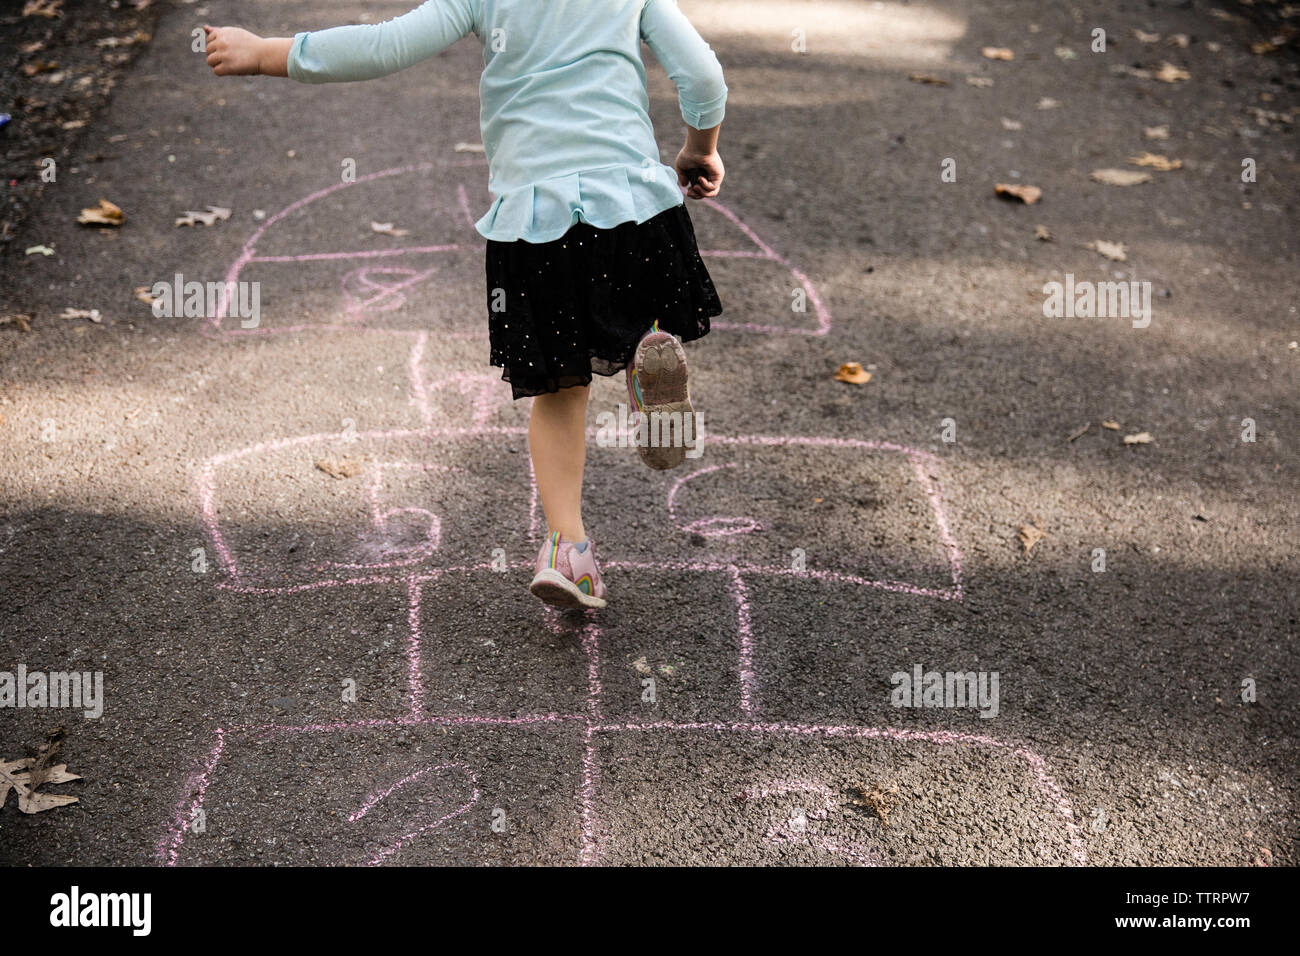 Low section of girl playing on hopscotch - Stock Image